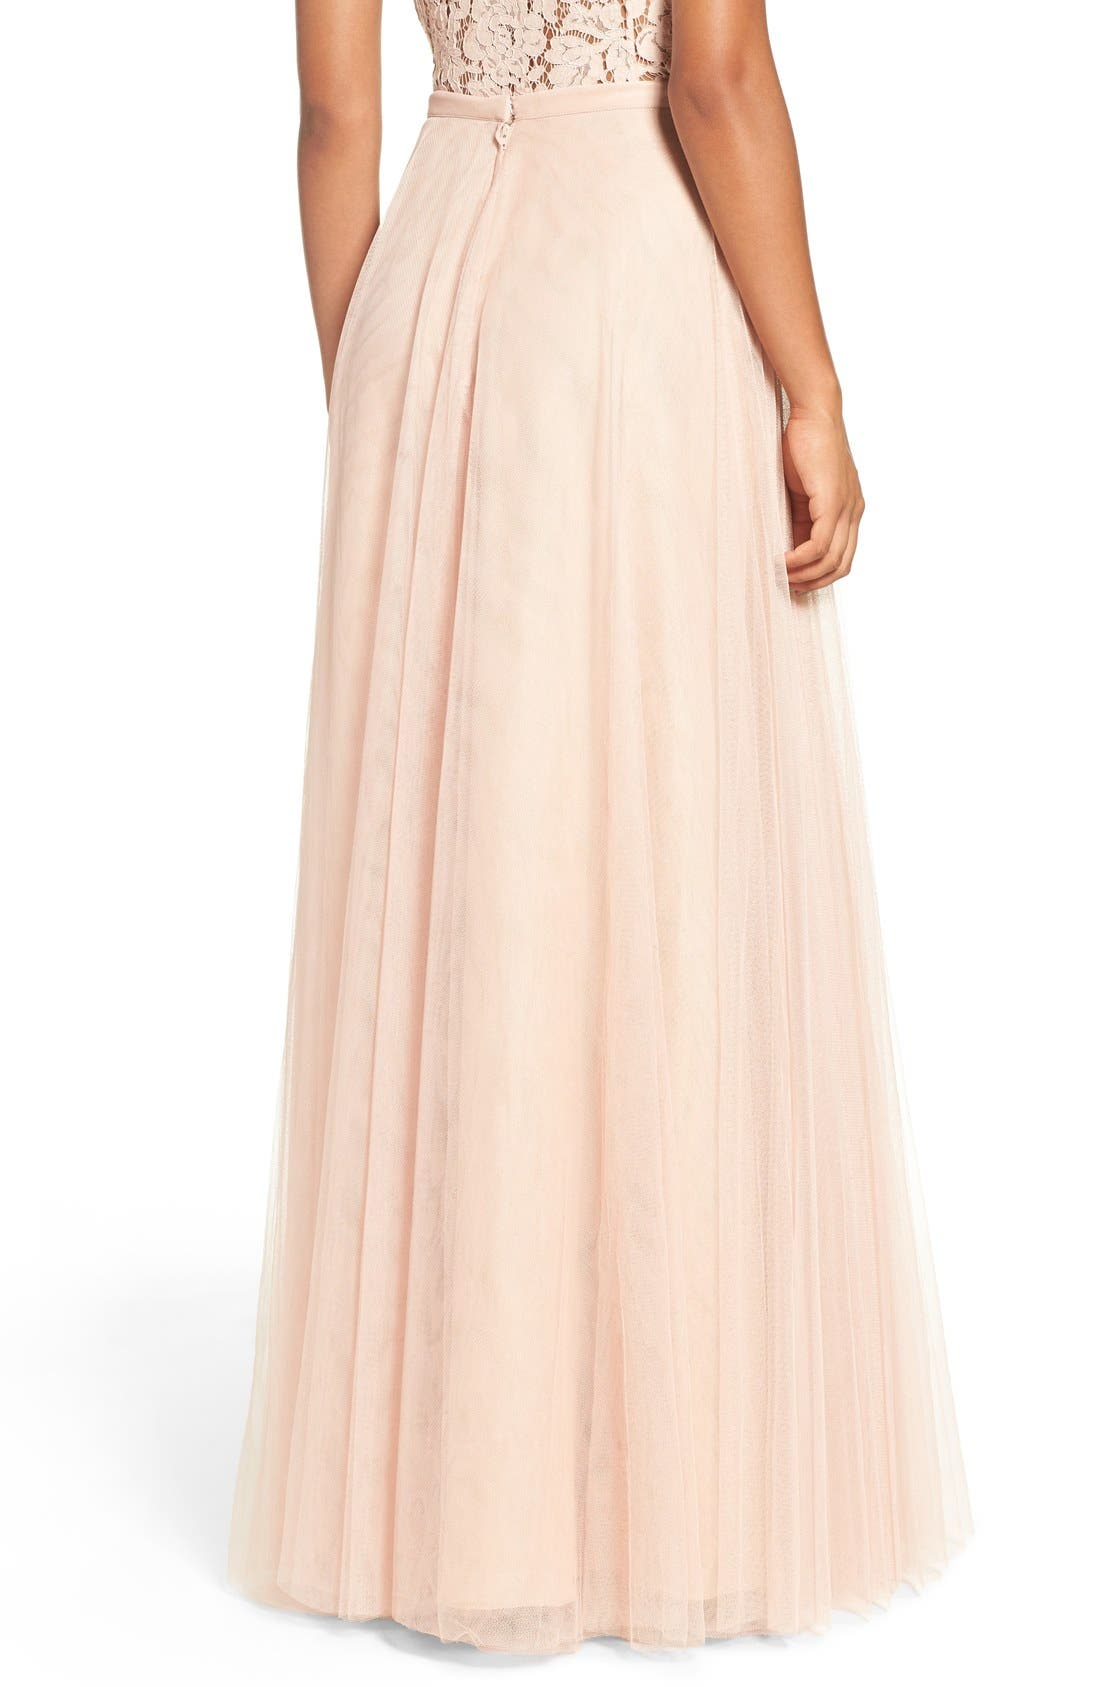 Winslow Long Tulle A-Line Skirt,                             Alternate thumbnail 8, color,                             CAMEO PINK